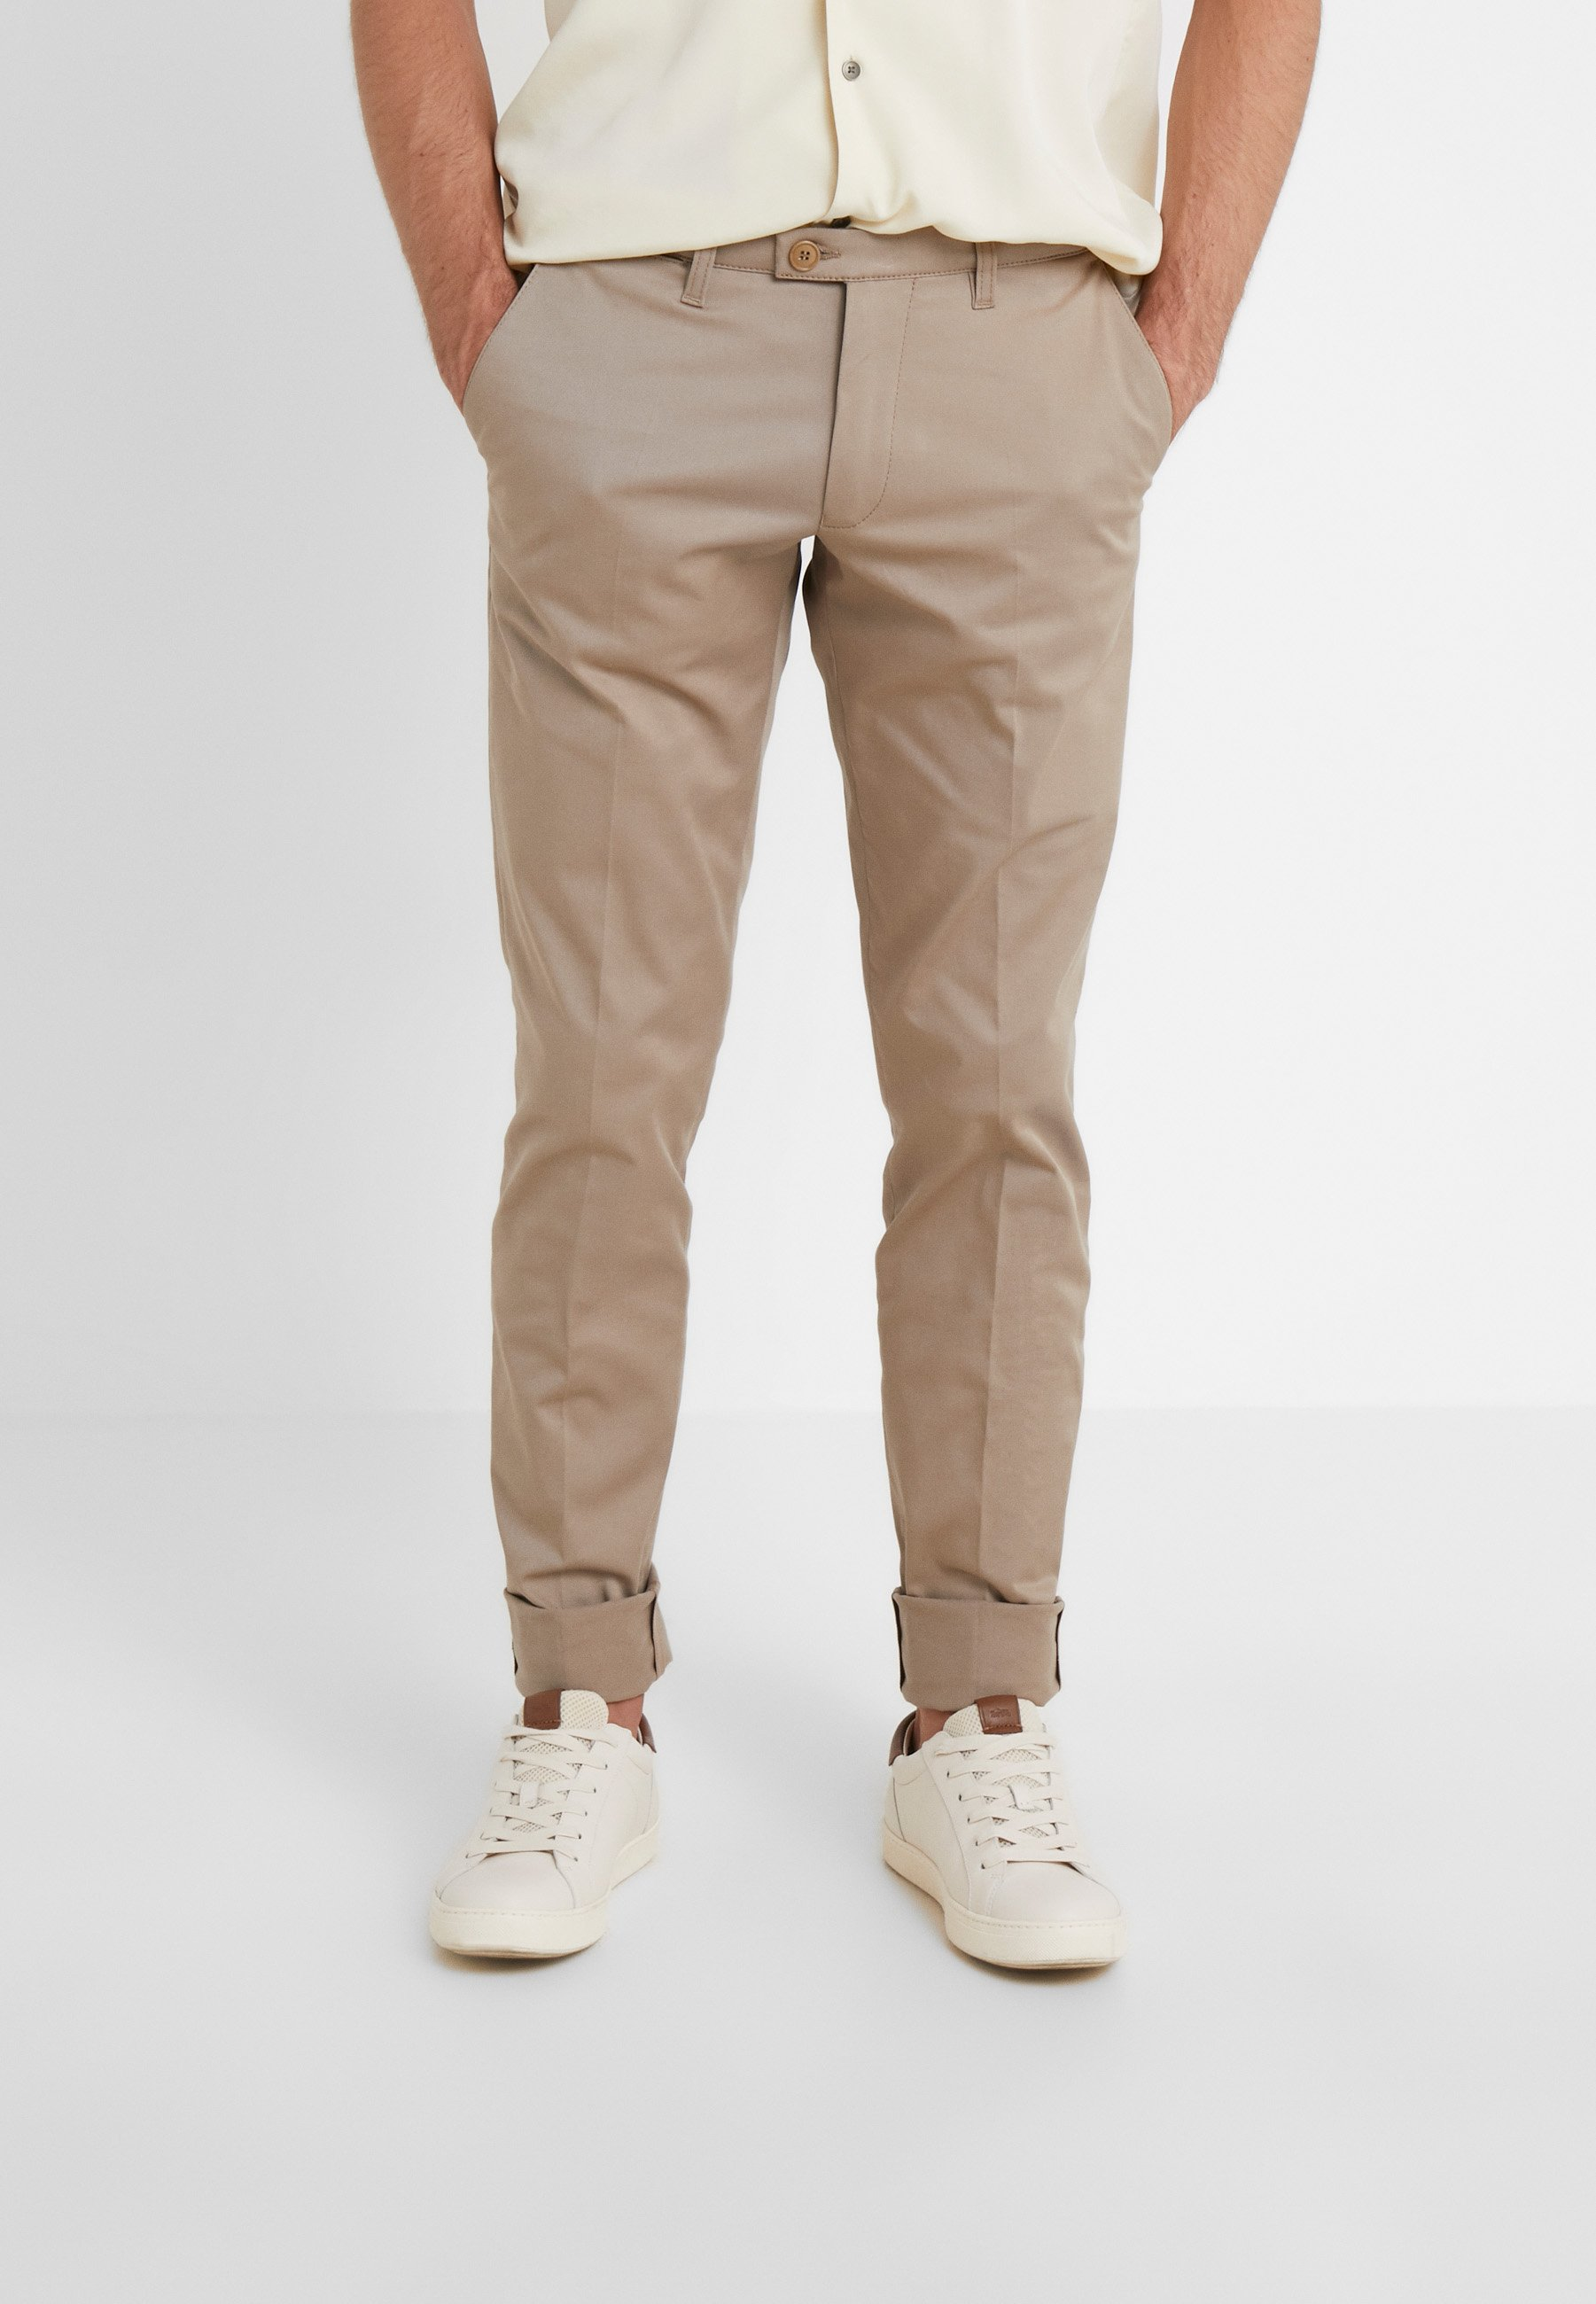 Drykorn KillPantalon Beige Classique Drykorn Classique Beige KillPantalon Beige Drykorn Drykorn KillPantalon Classique ZwiukXOPTl